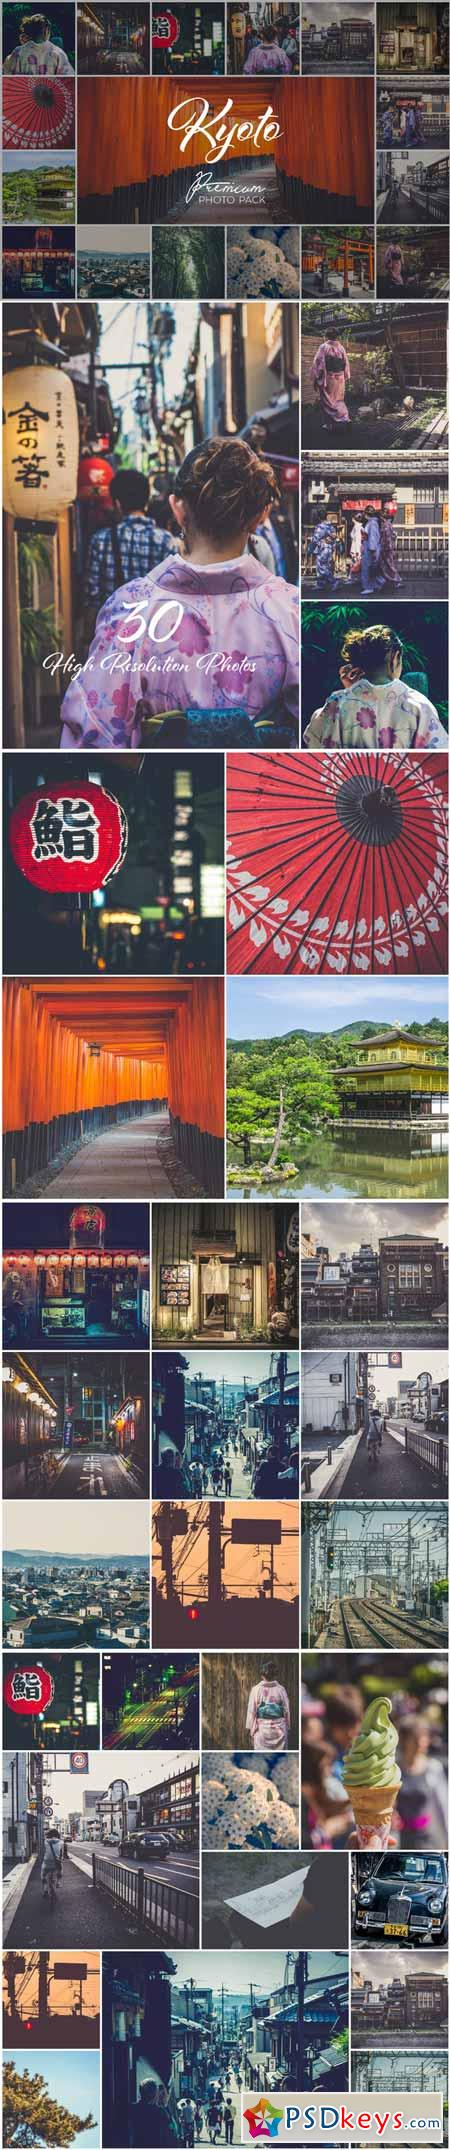 Kyoto Photo Pack 585642